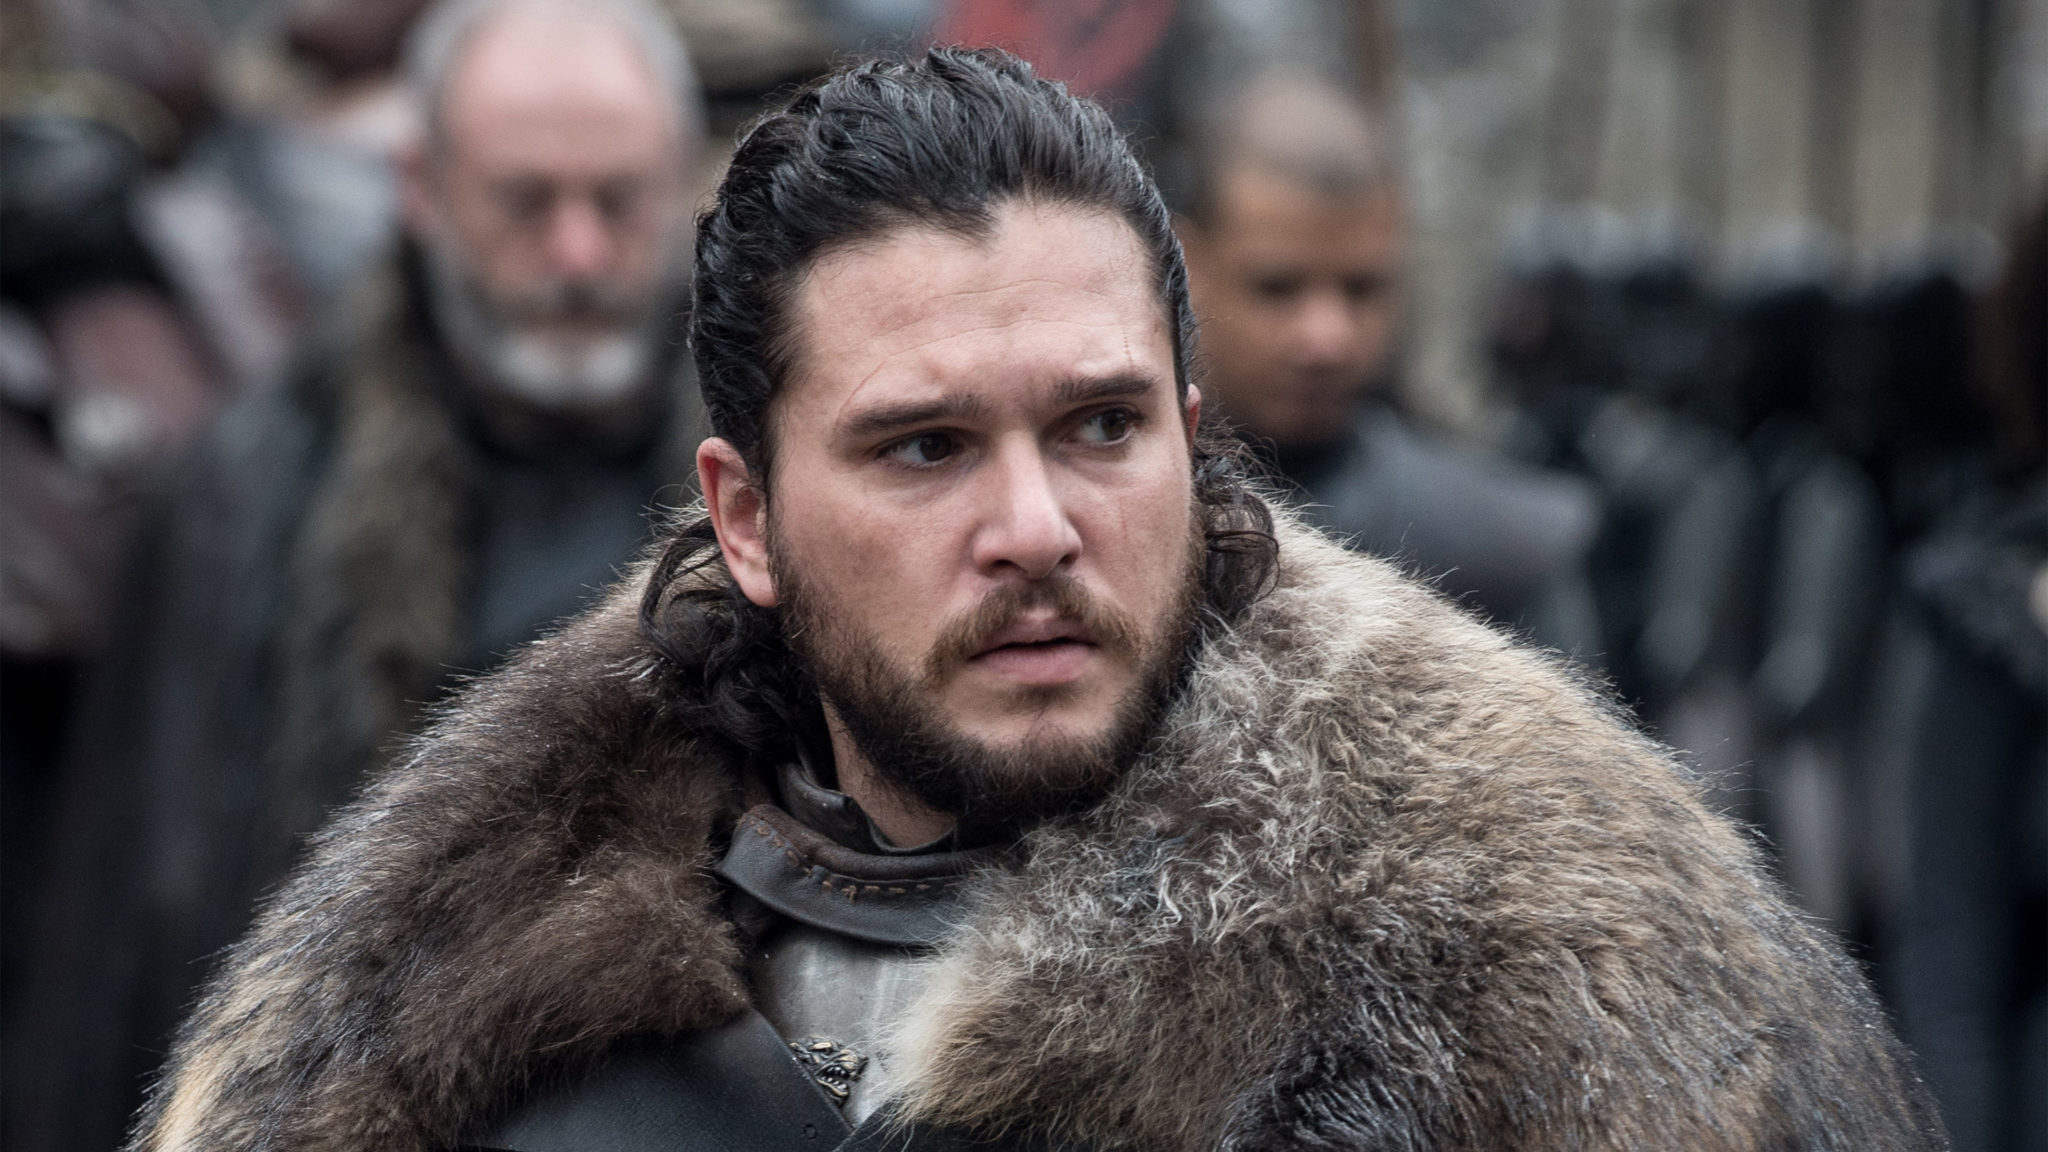 Epic Game of Thrones storylines like Stark bastard Jon Snow's have played a role in The Mandalorian's new plots.